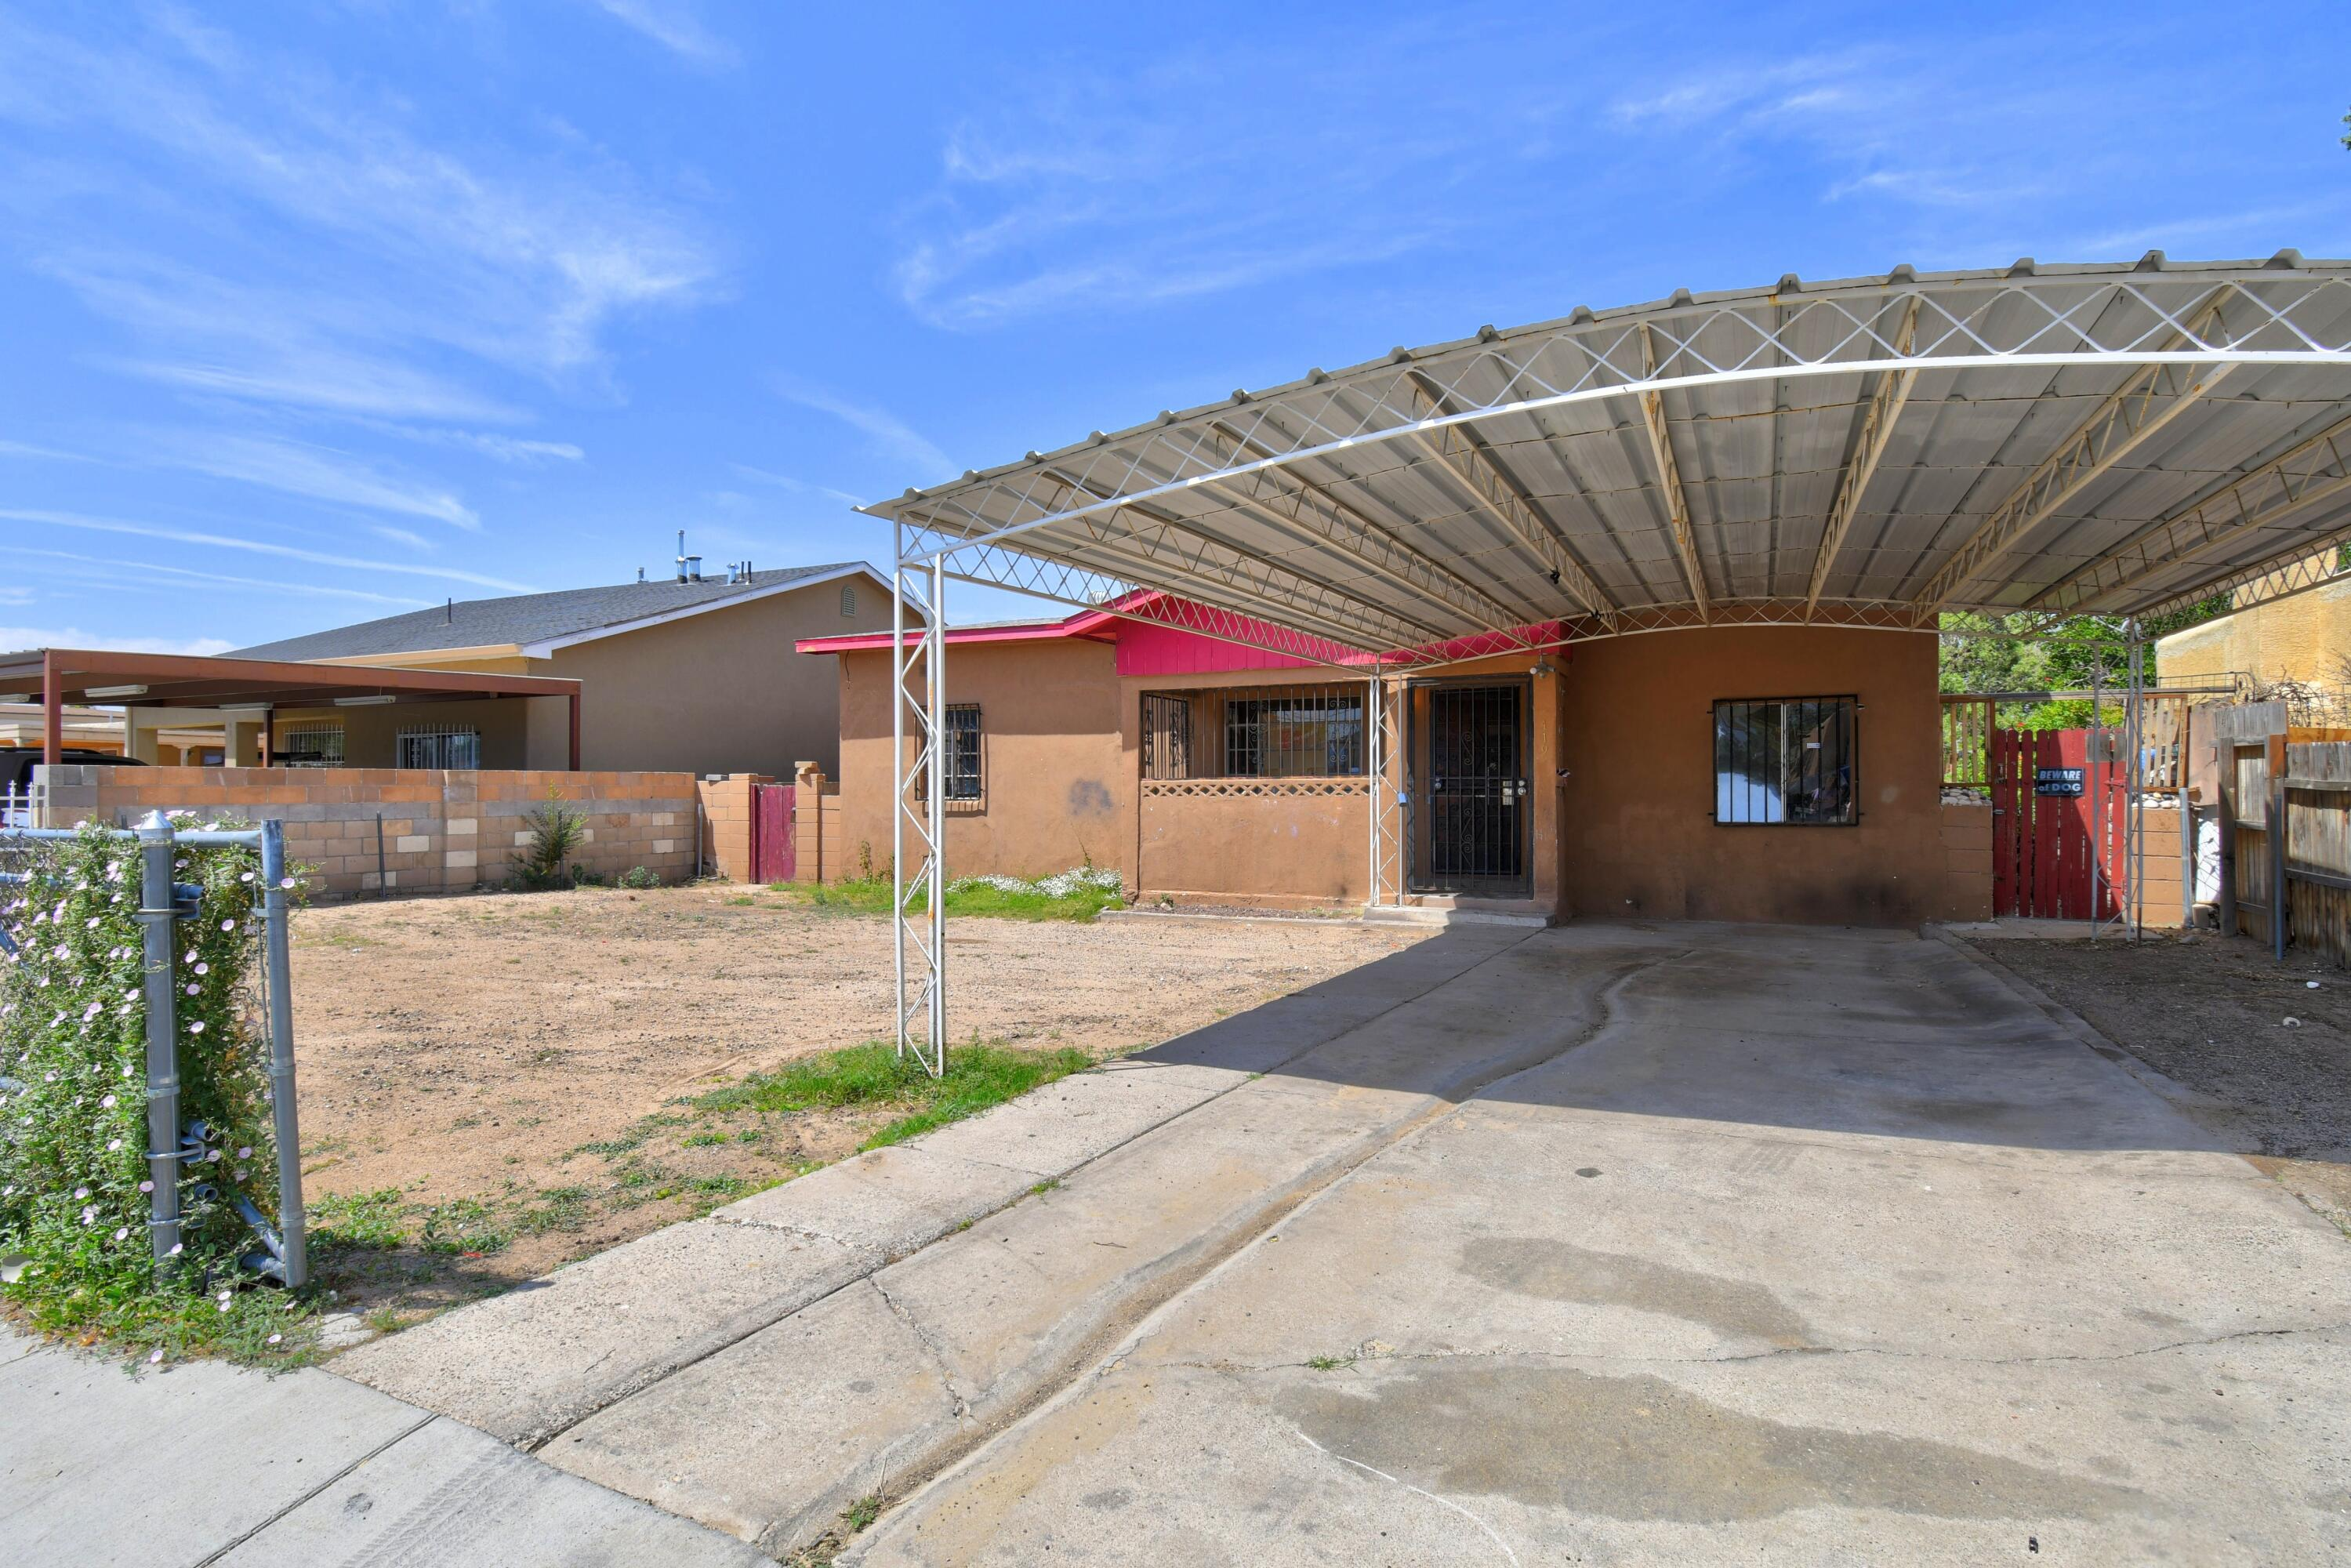 **AS-IS** Great investment opportunity! Come check out this 3 bedroom, 2 bath with 2 living spaces. Large Carport for all your toys.  The home is located down the street from La Mesa Elementary School.  Close Proximity to KAFB, I40 and many shopping areas. So much potential!  This home will not last.  Hurry and set your appointment today.